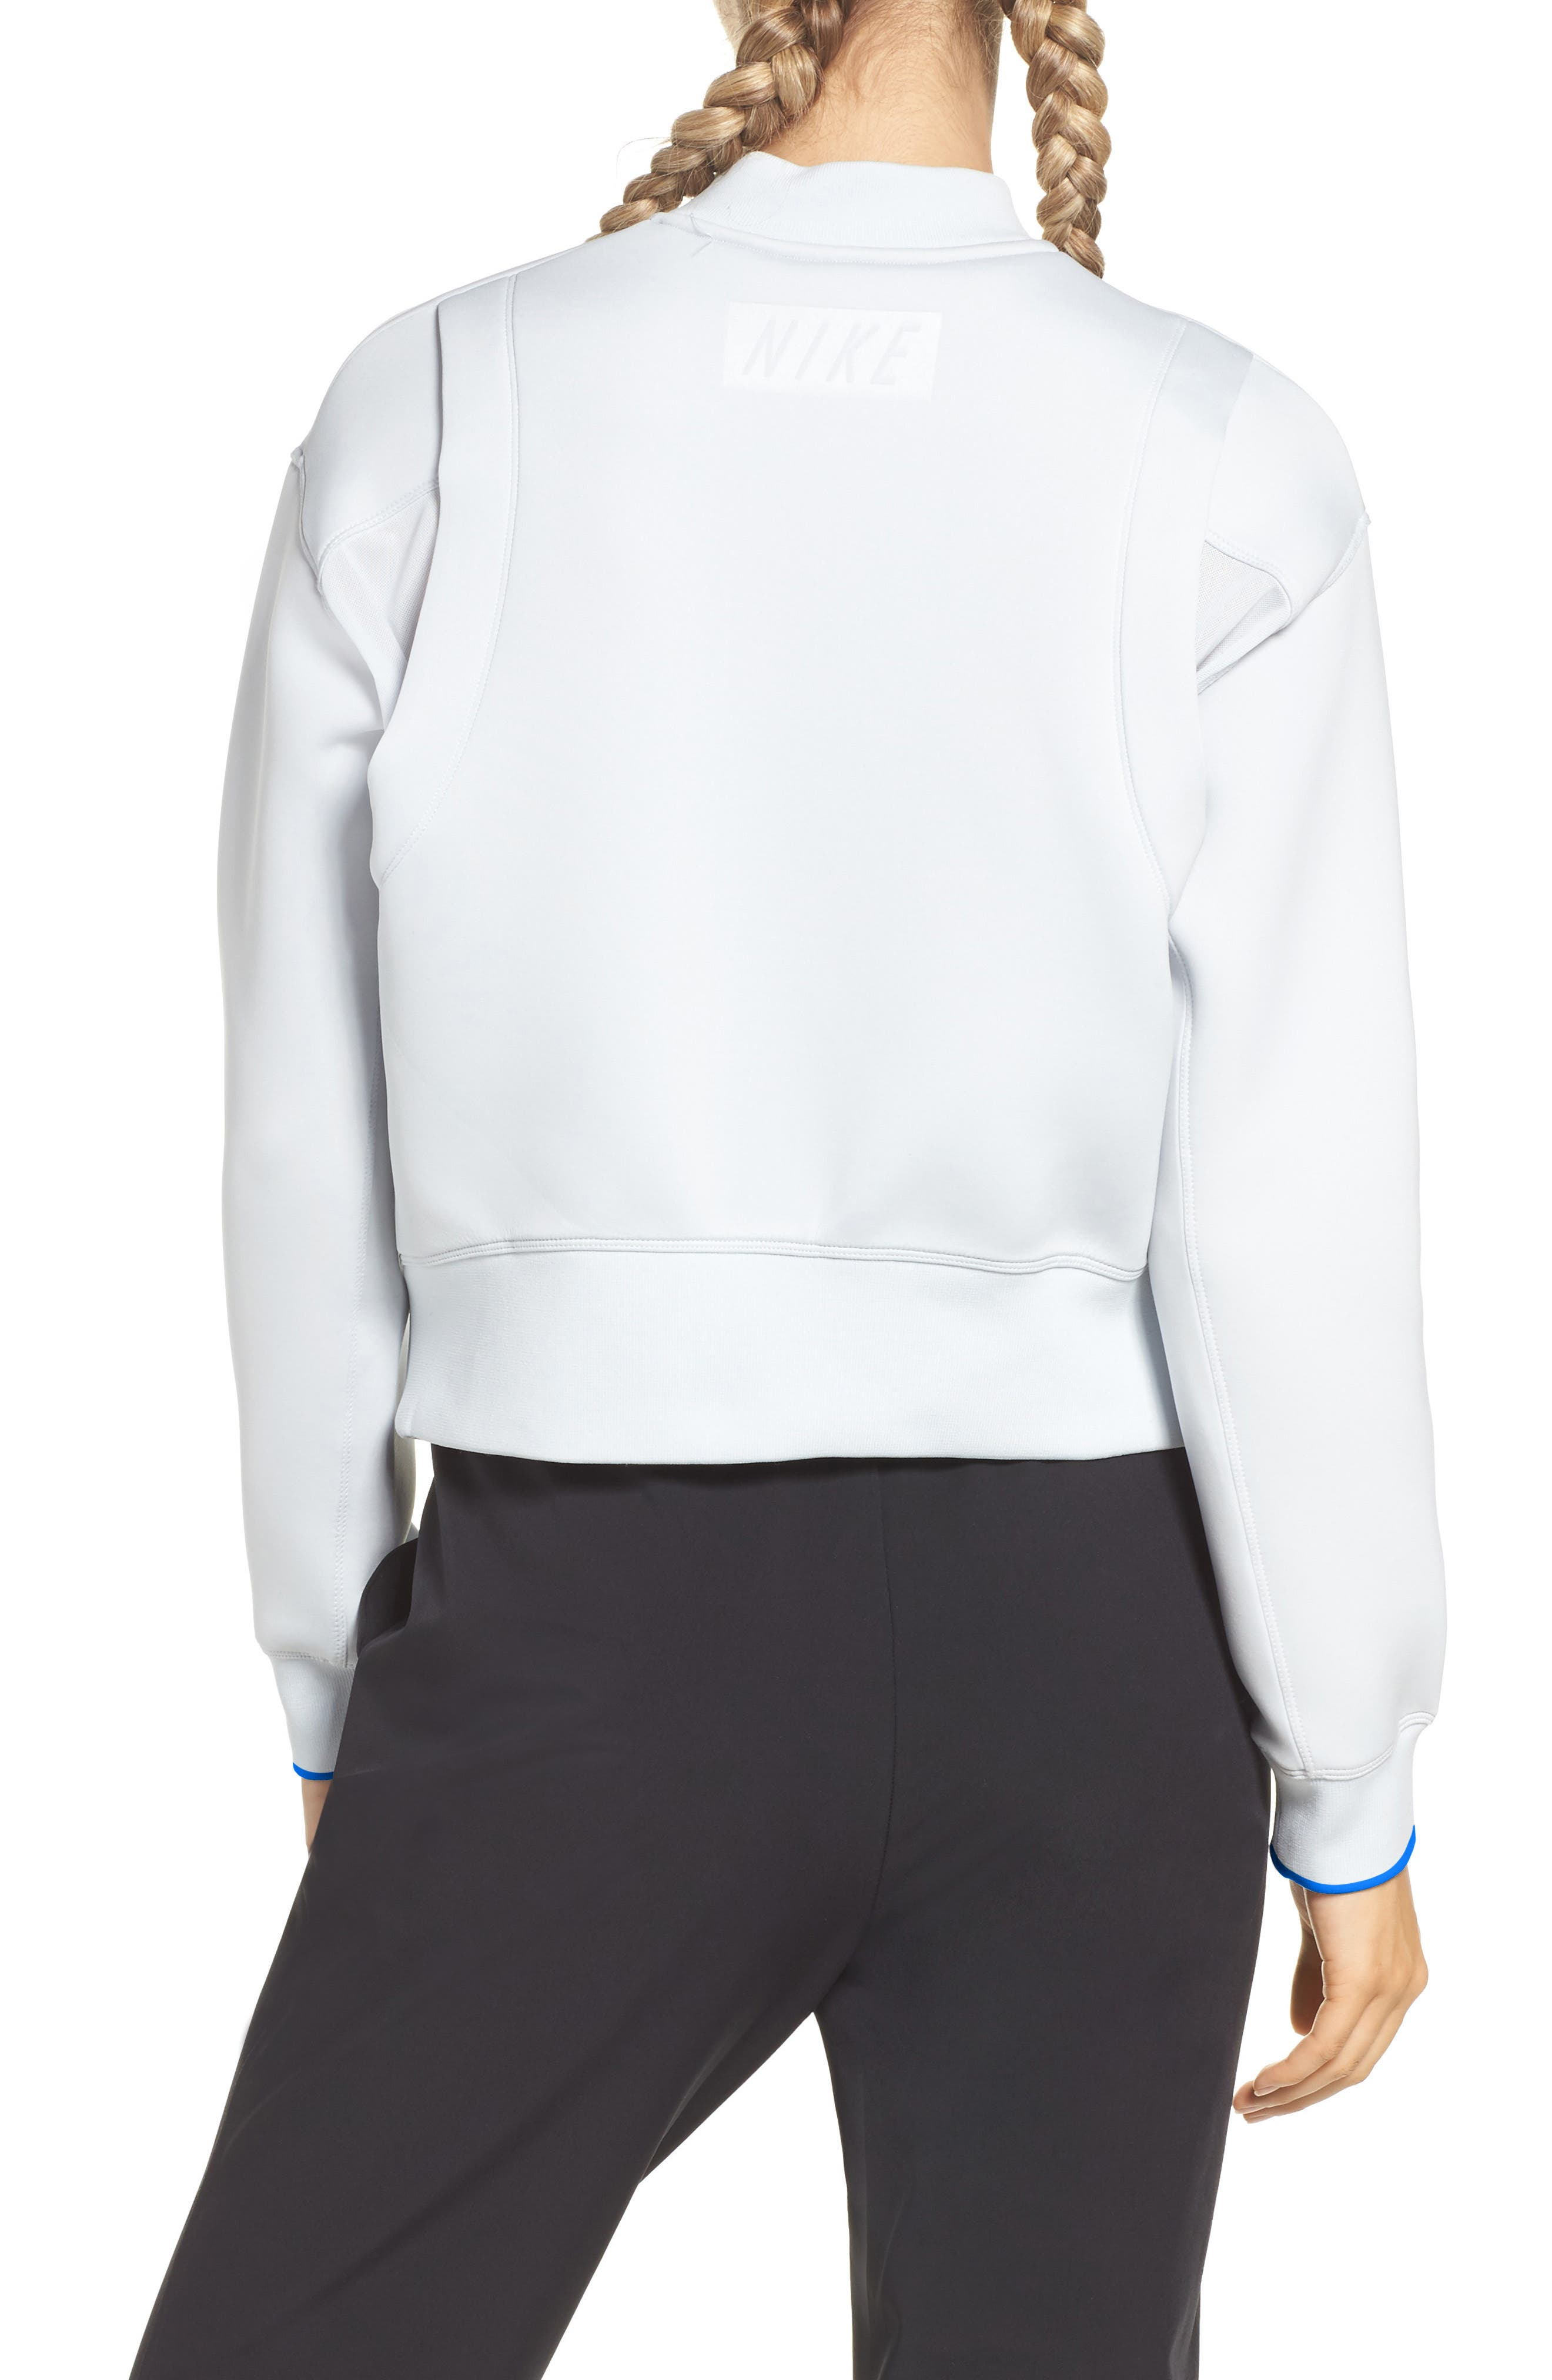 Therma Sphere Max Training Jacket,                             Alternate thumbnail 6, color,